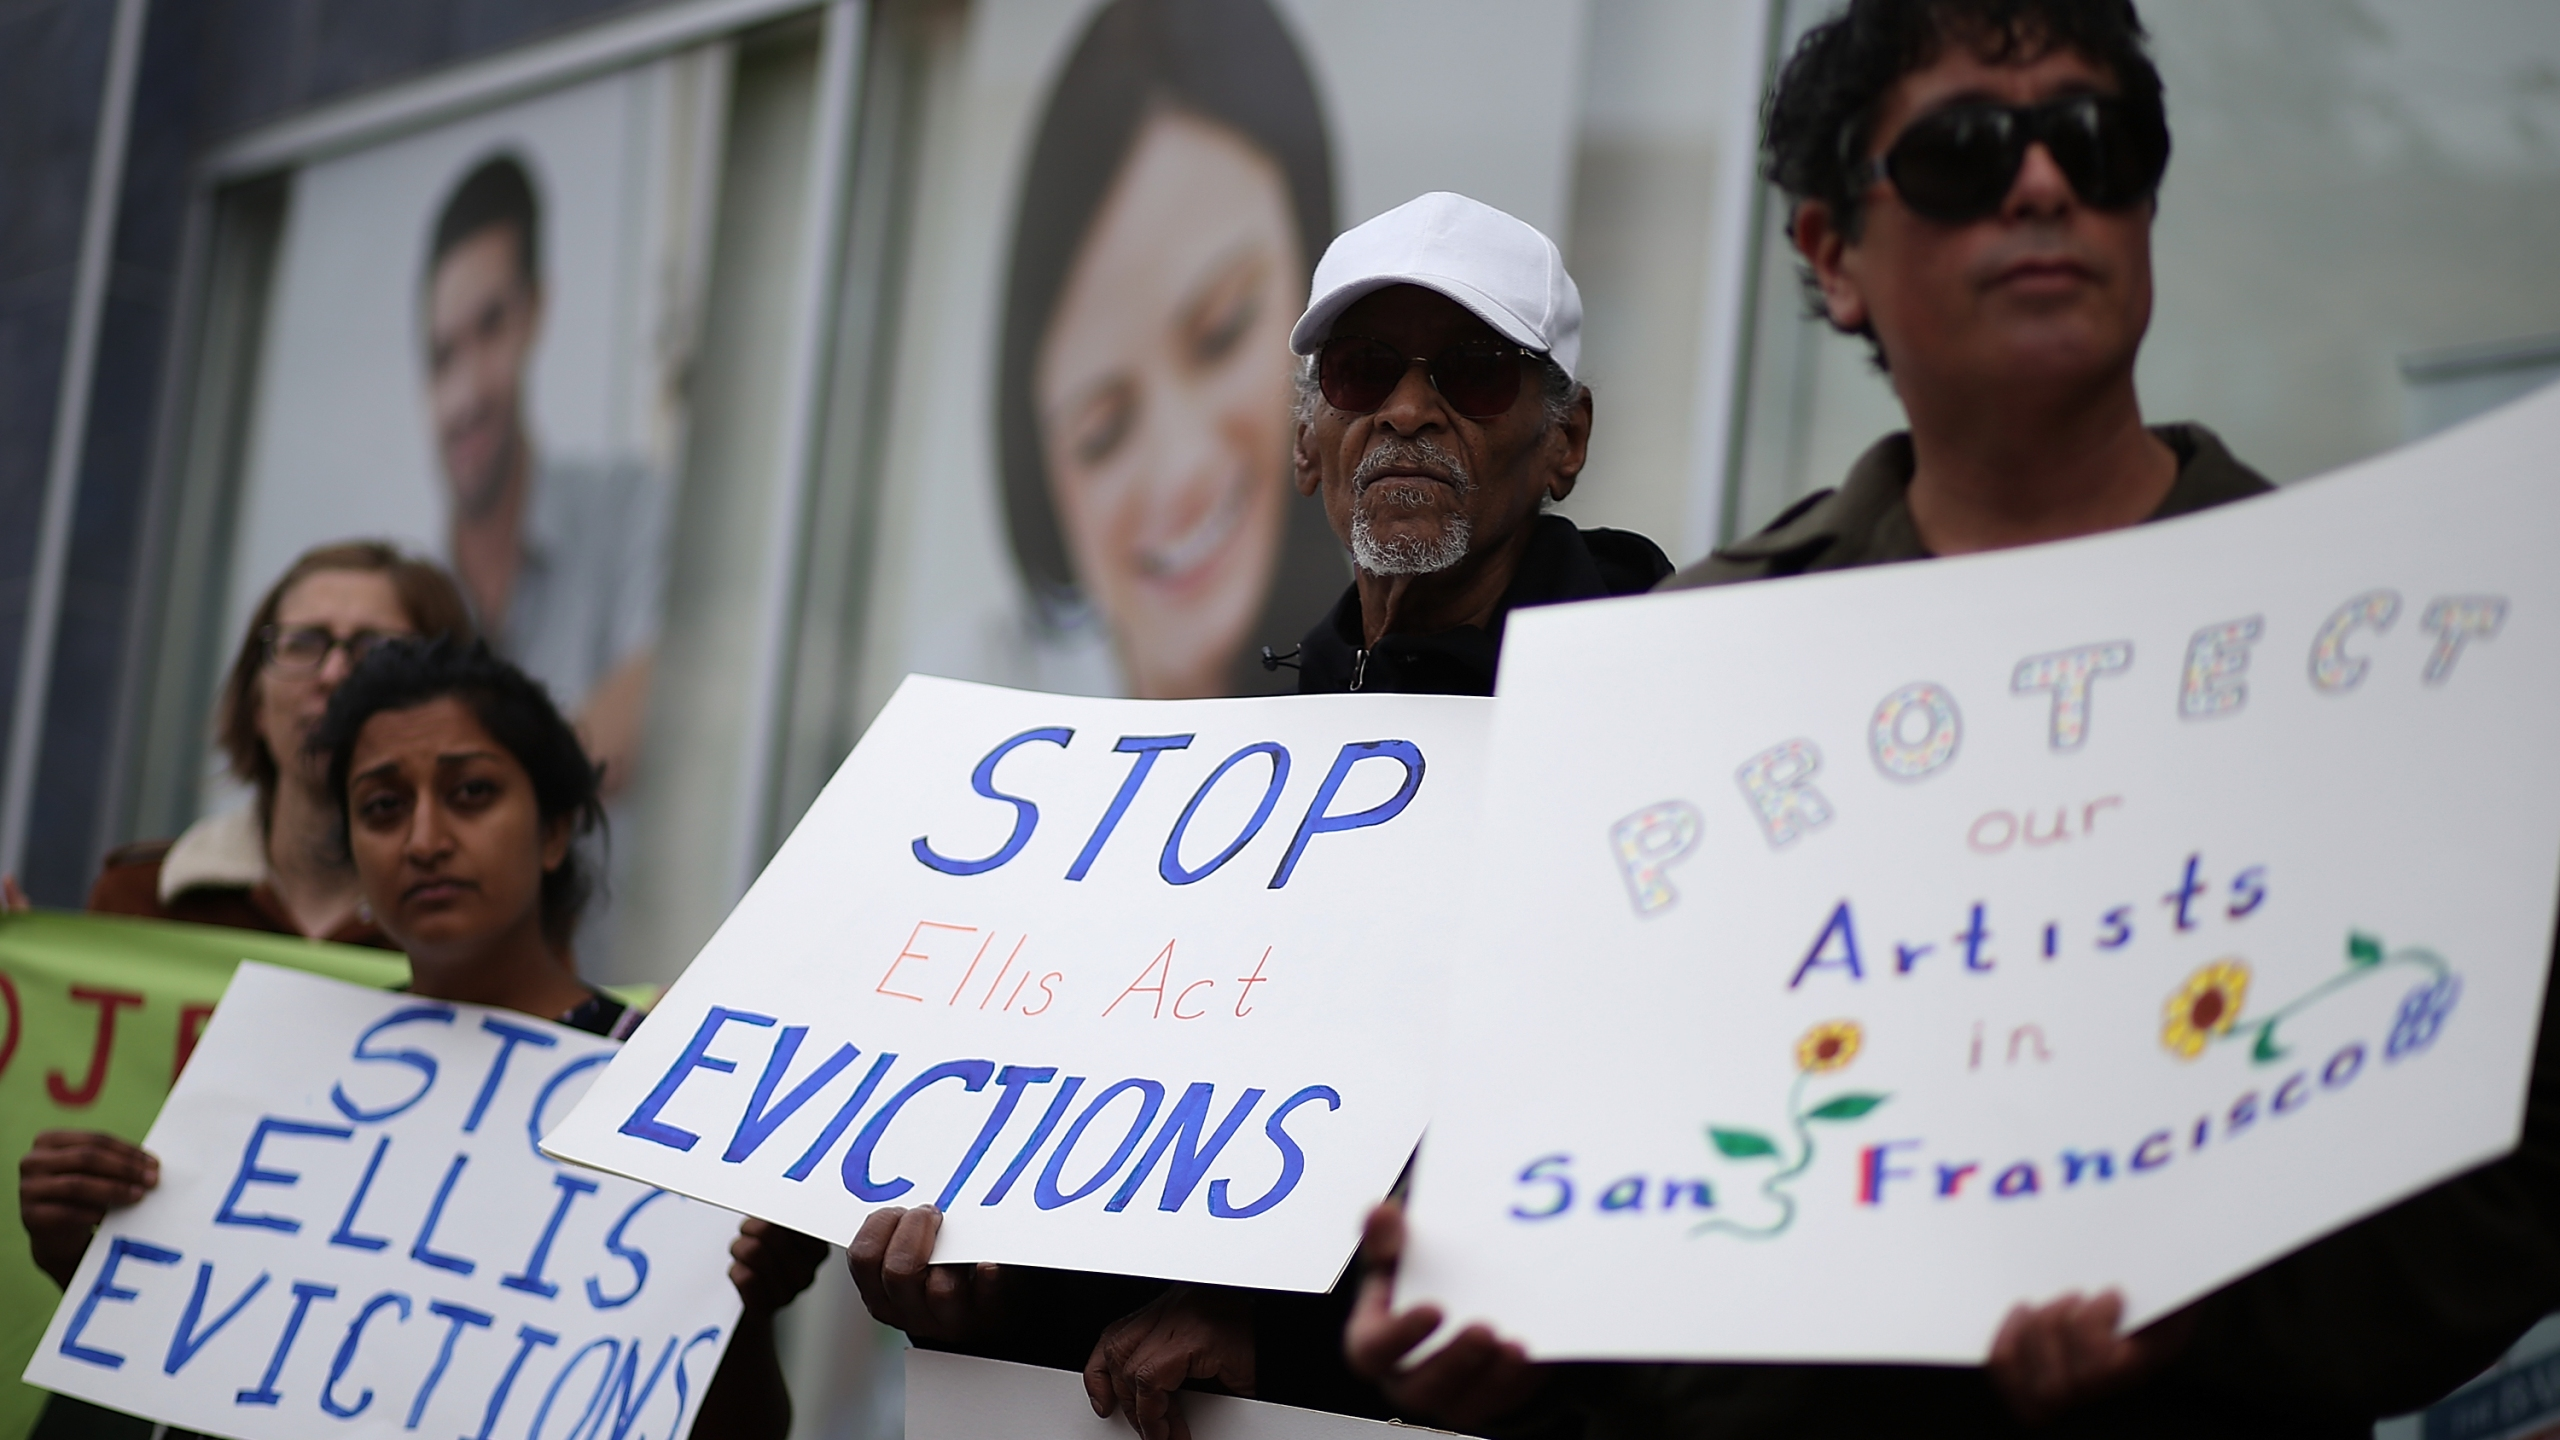 Activists and tenants stage a protest against A landlord's attempts to evict them from a San Francisco building on March 8, 2016. (Justin Sullivan/Getty Images)